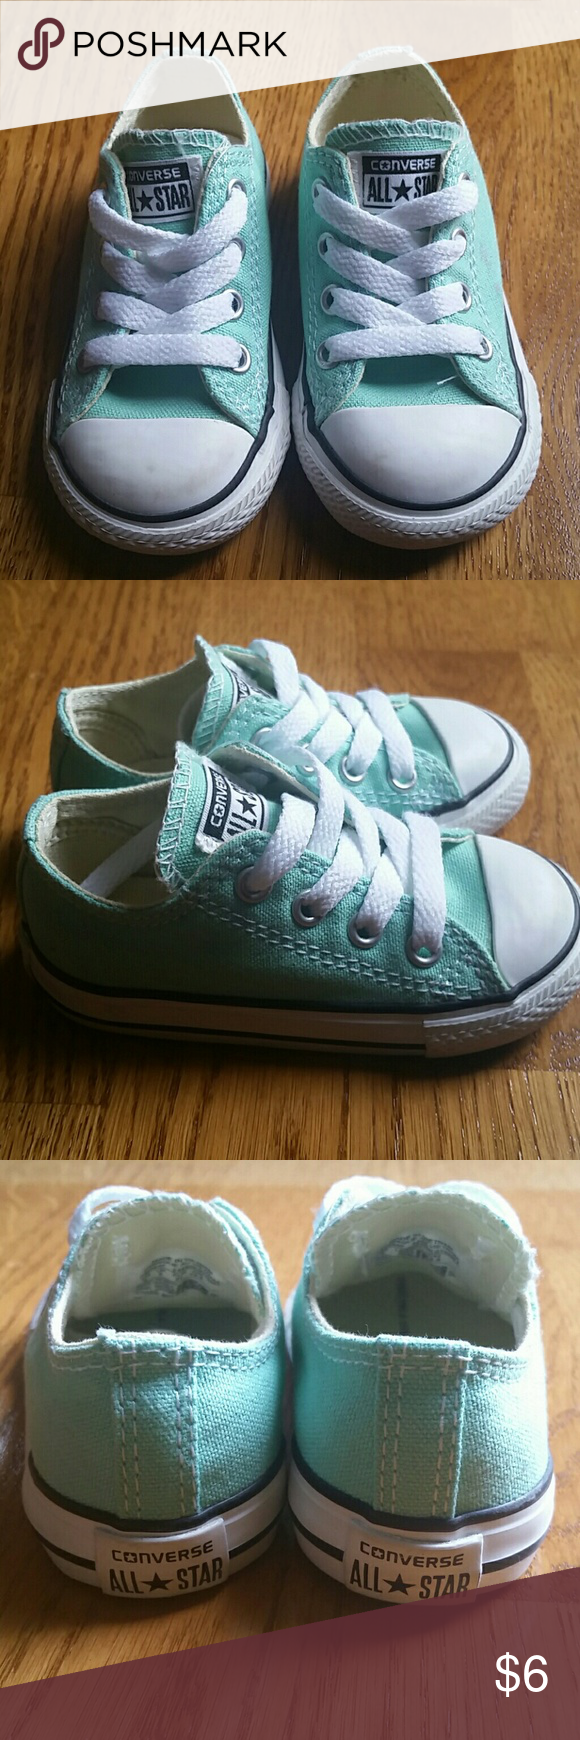 3dc805c98036 Toddler Converse Chuck Taylor All Star Lo Sneaker Toddler Converse Chuck  Taylor All Star Lo sneaker in mint color